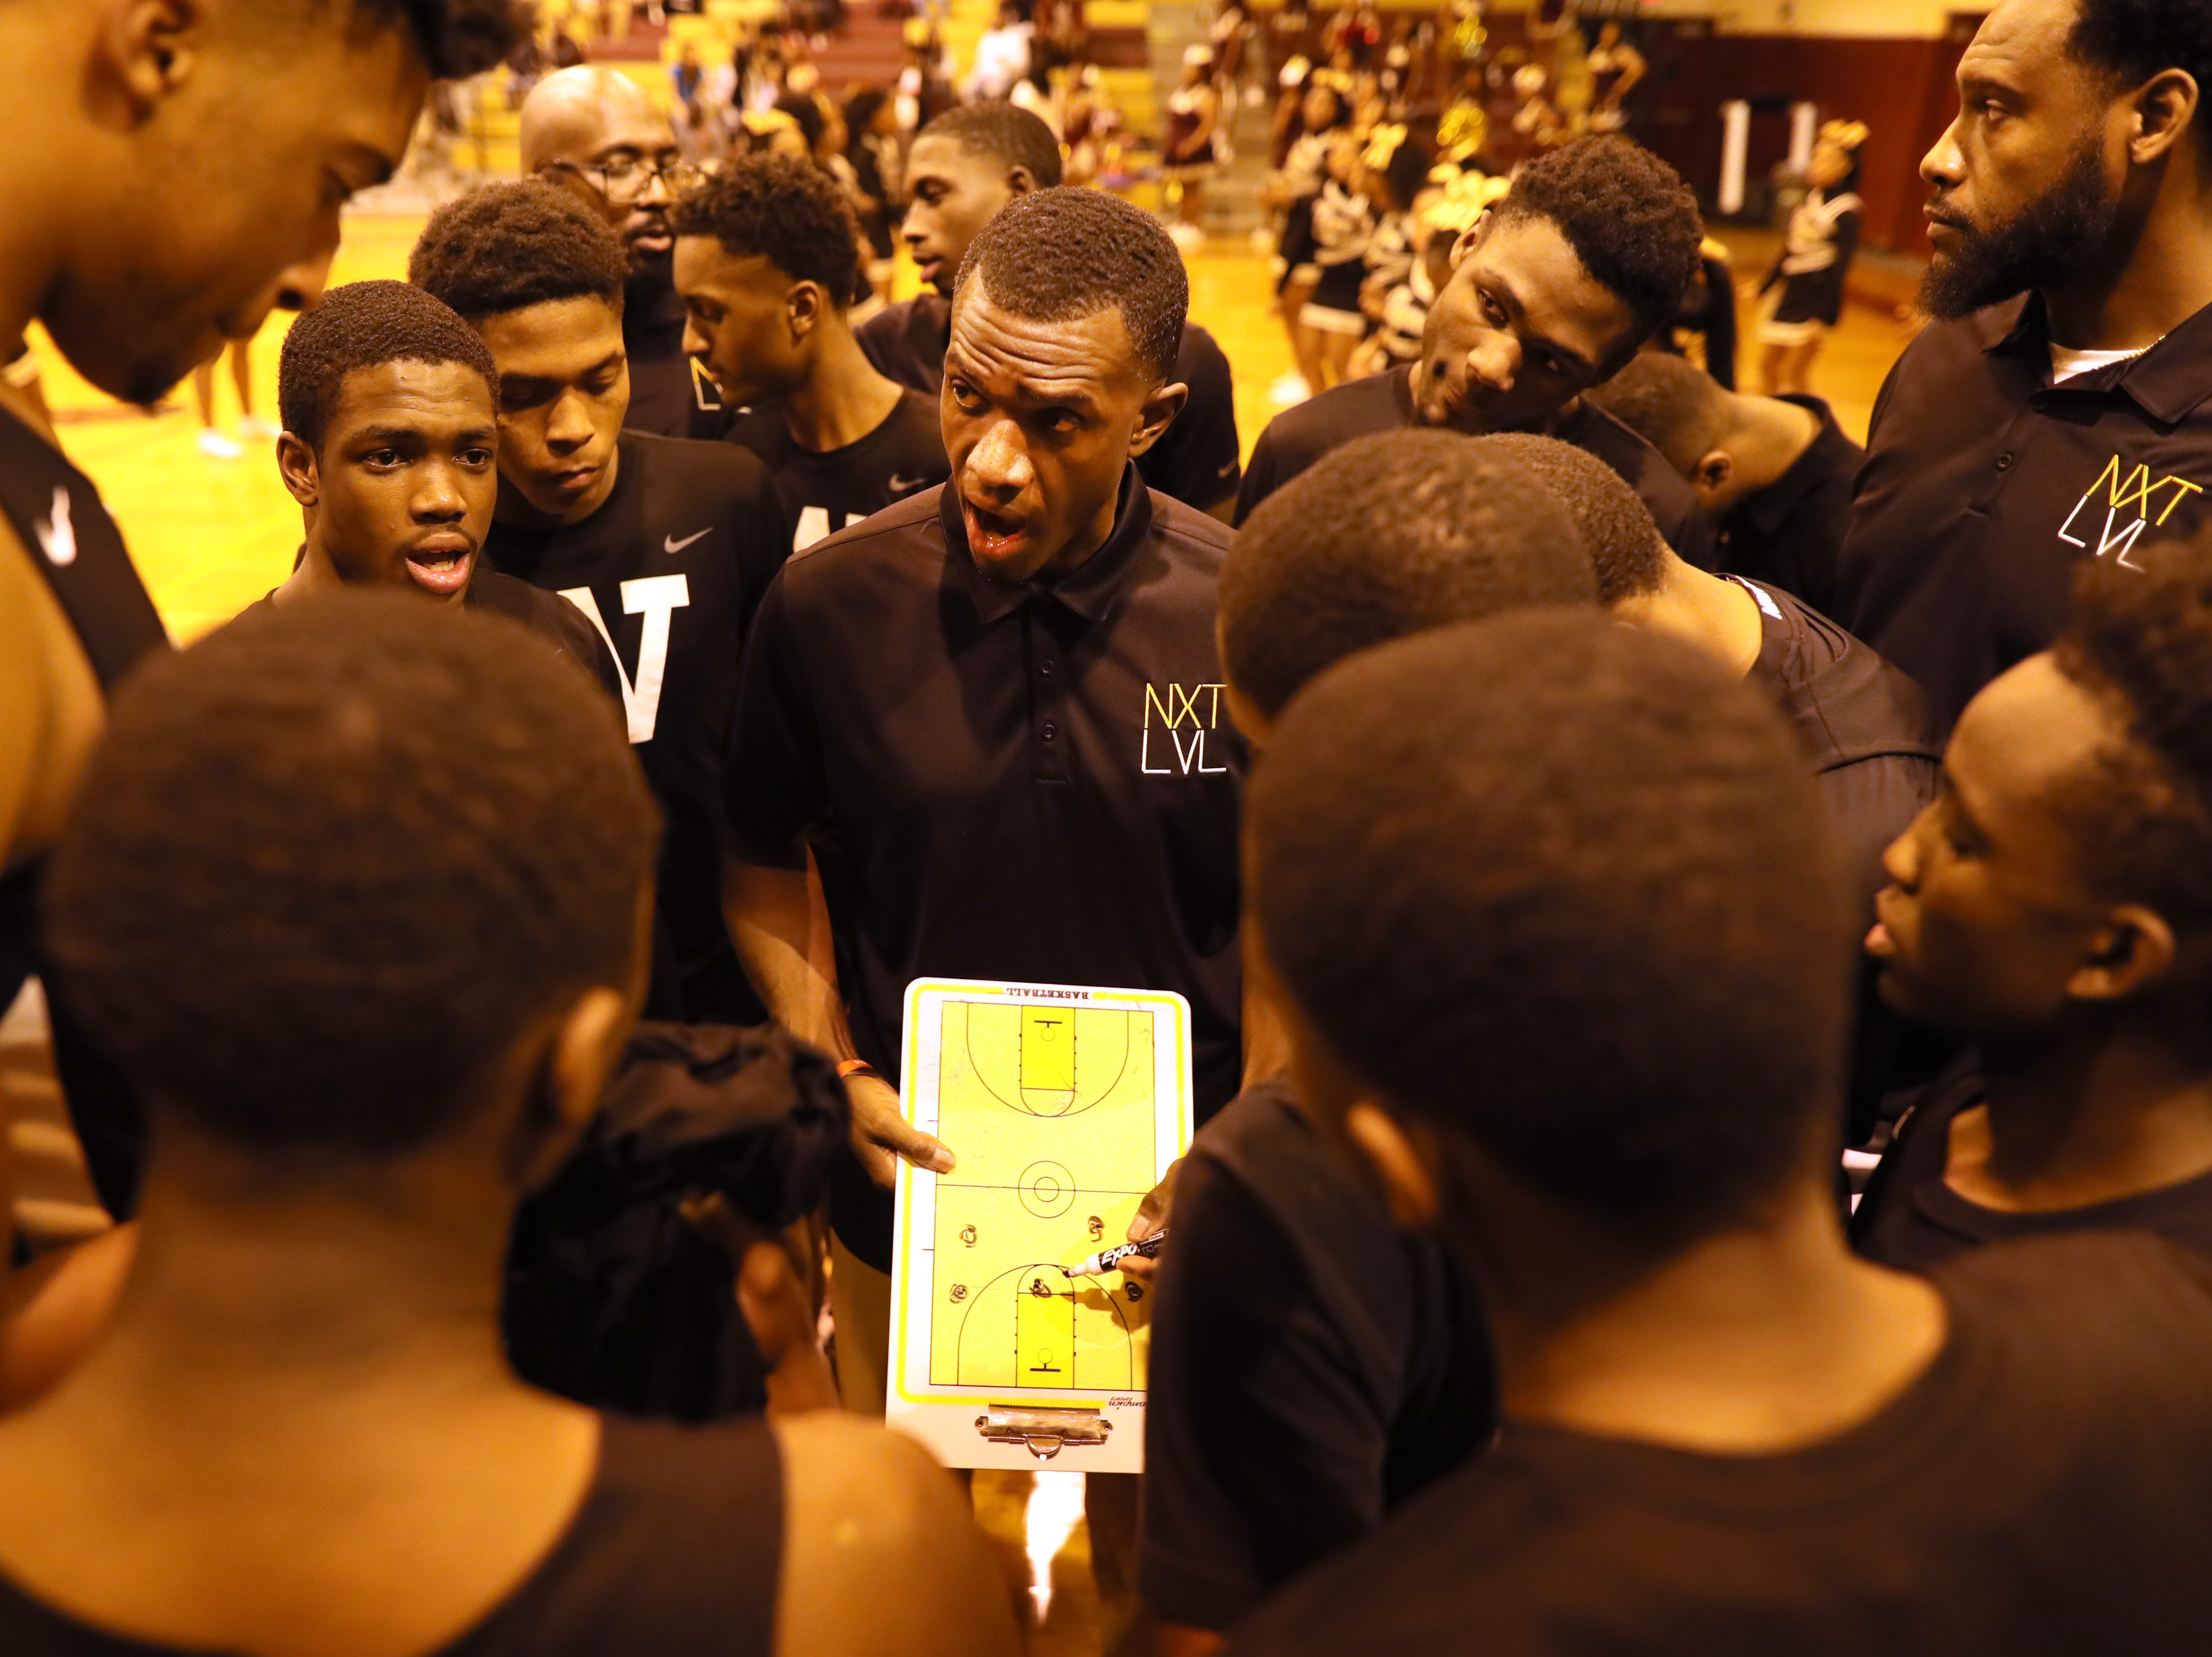 Whitehaven Head Coach Faragi Phillips talks to his team before their game at Oakhaven High School on Thursday, Jan. 10, 2019.